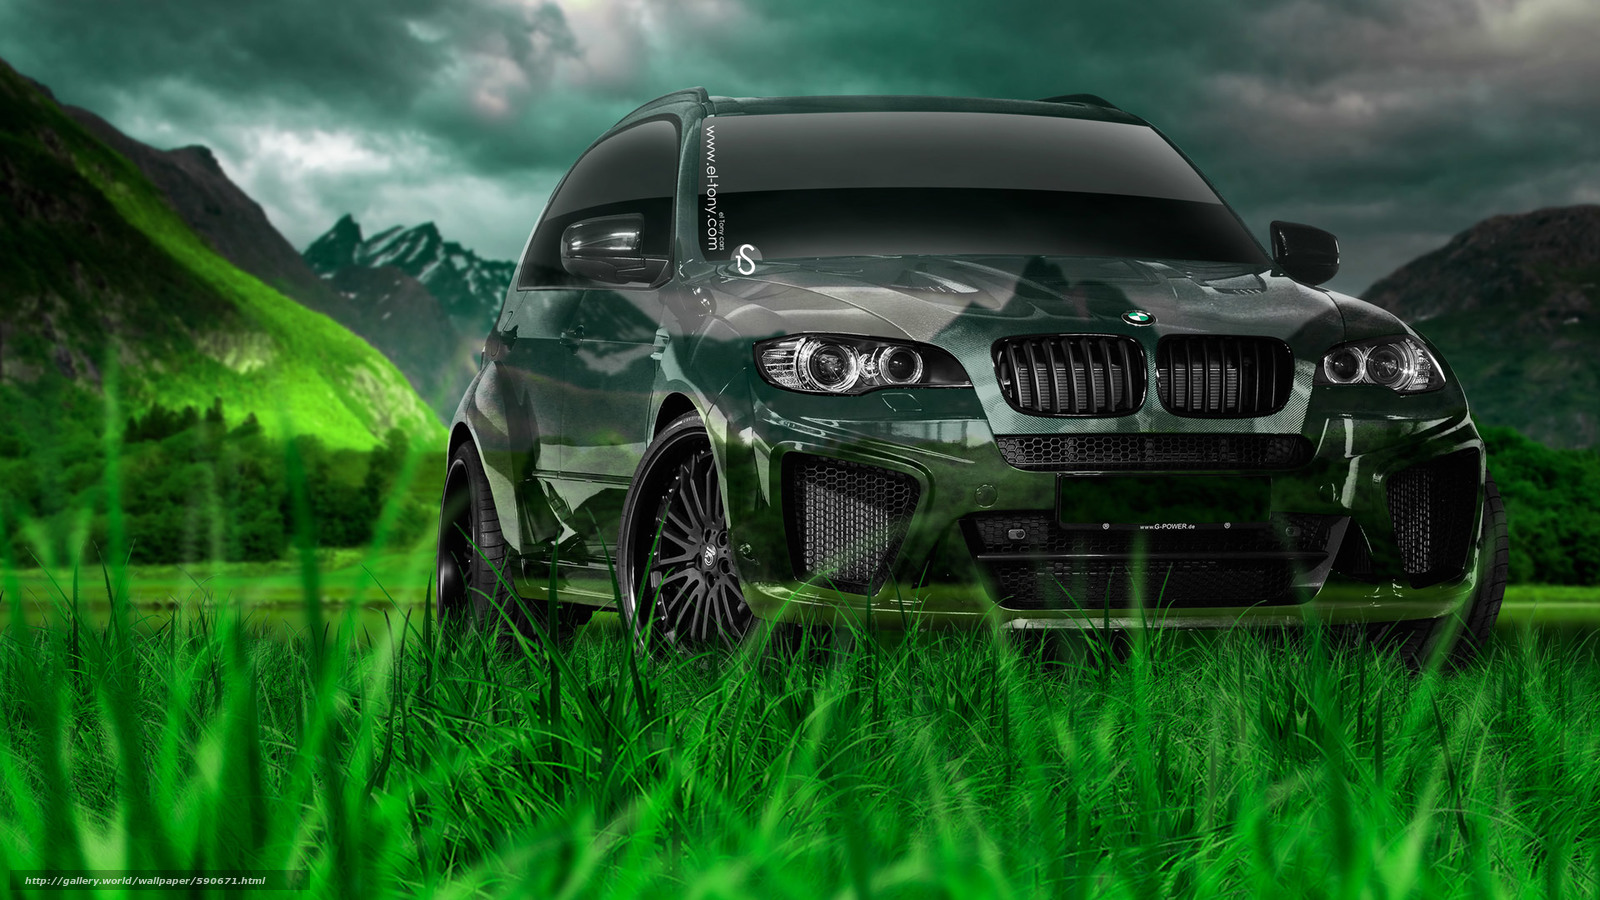 Tony Kokhan, BMW, X5, Crystal, Nature, Green, Grass, El Tony Cars, Jeep,  Crossover, Photoshop, Art, HD Wallpapers, Tony Cohan, Photoshop, BMW, X 5,  X5, ...